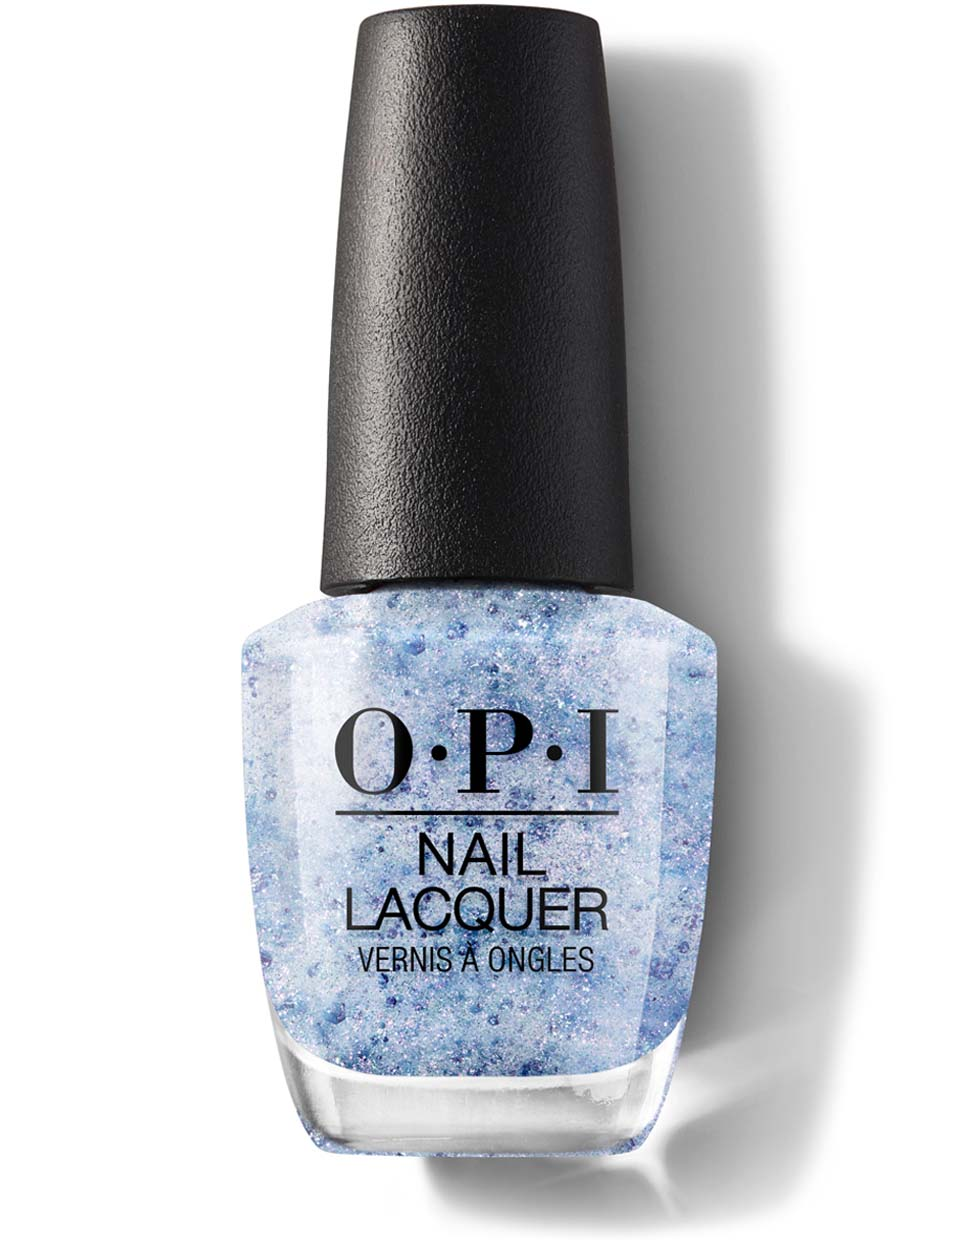 Butterfly Me to the Moon - Nail Lacquer | OPI